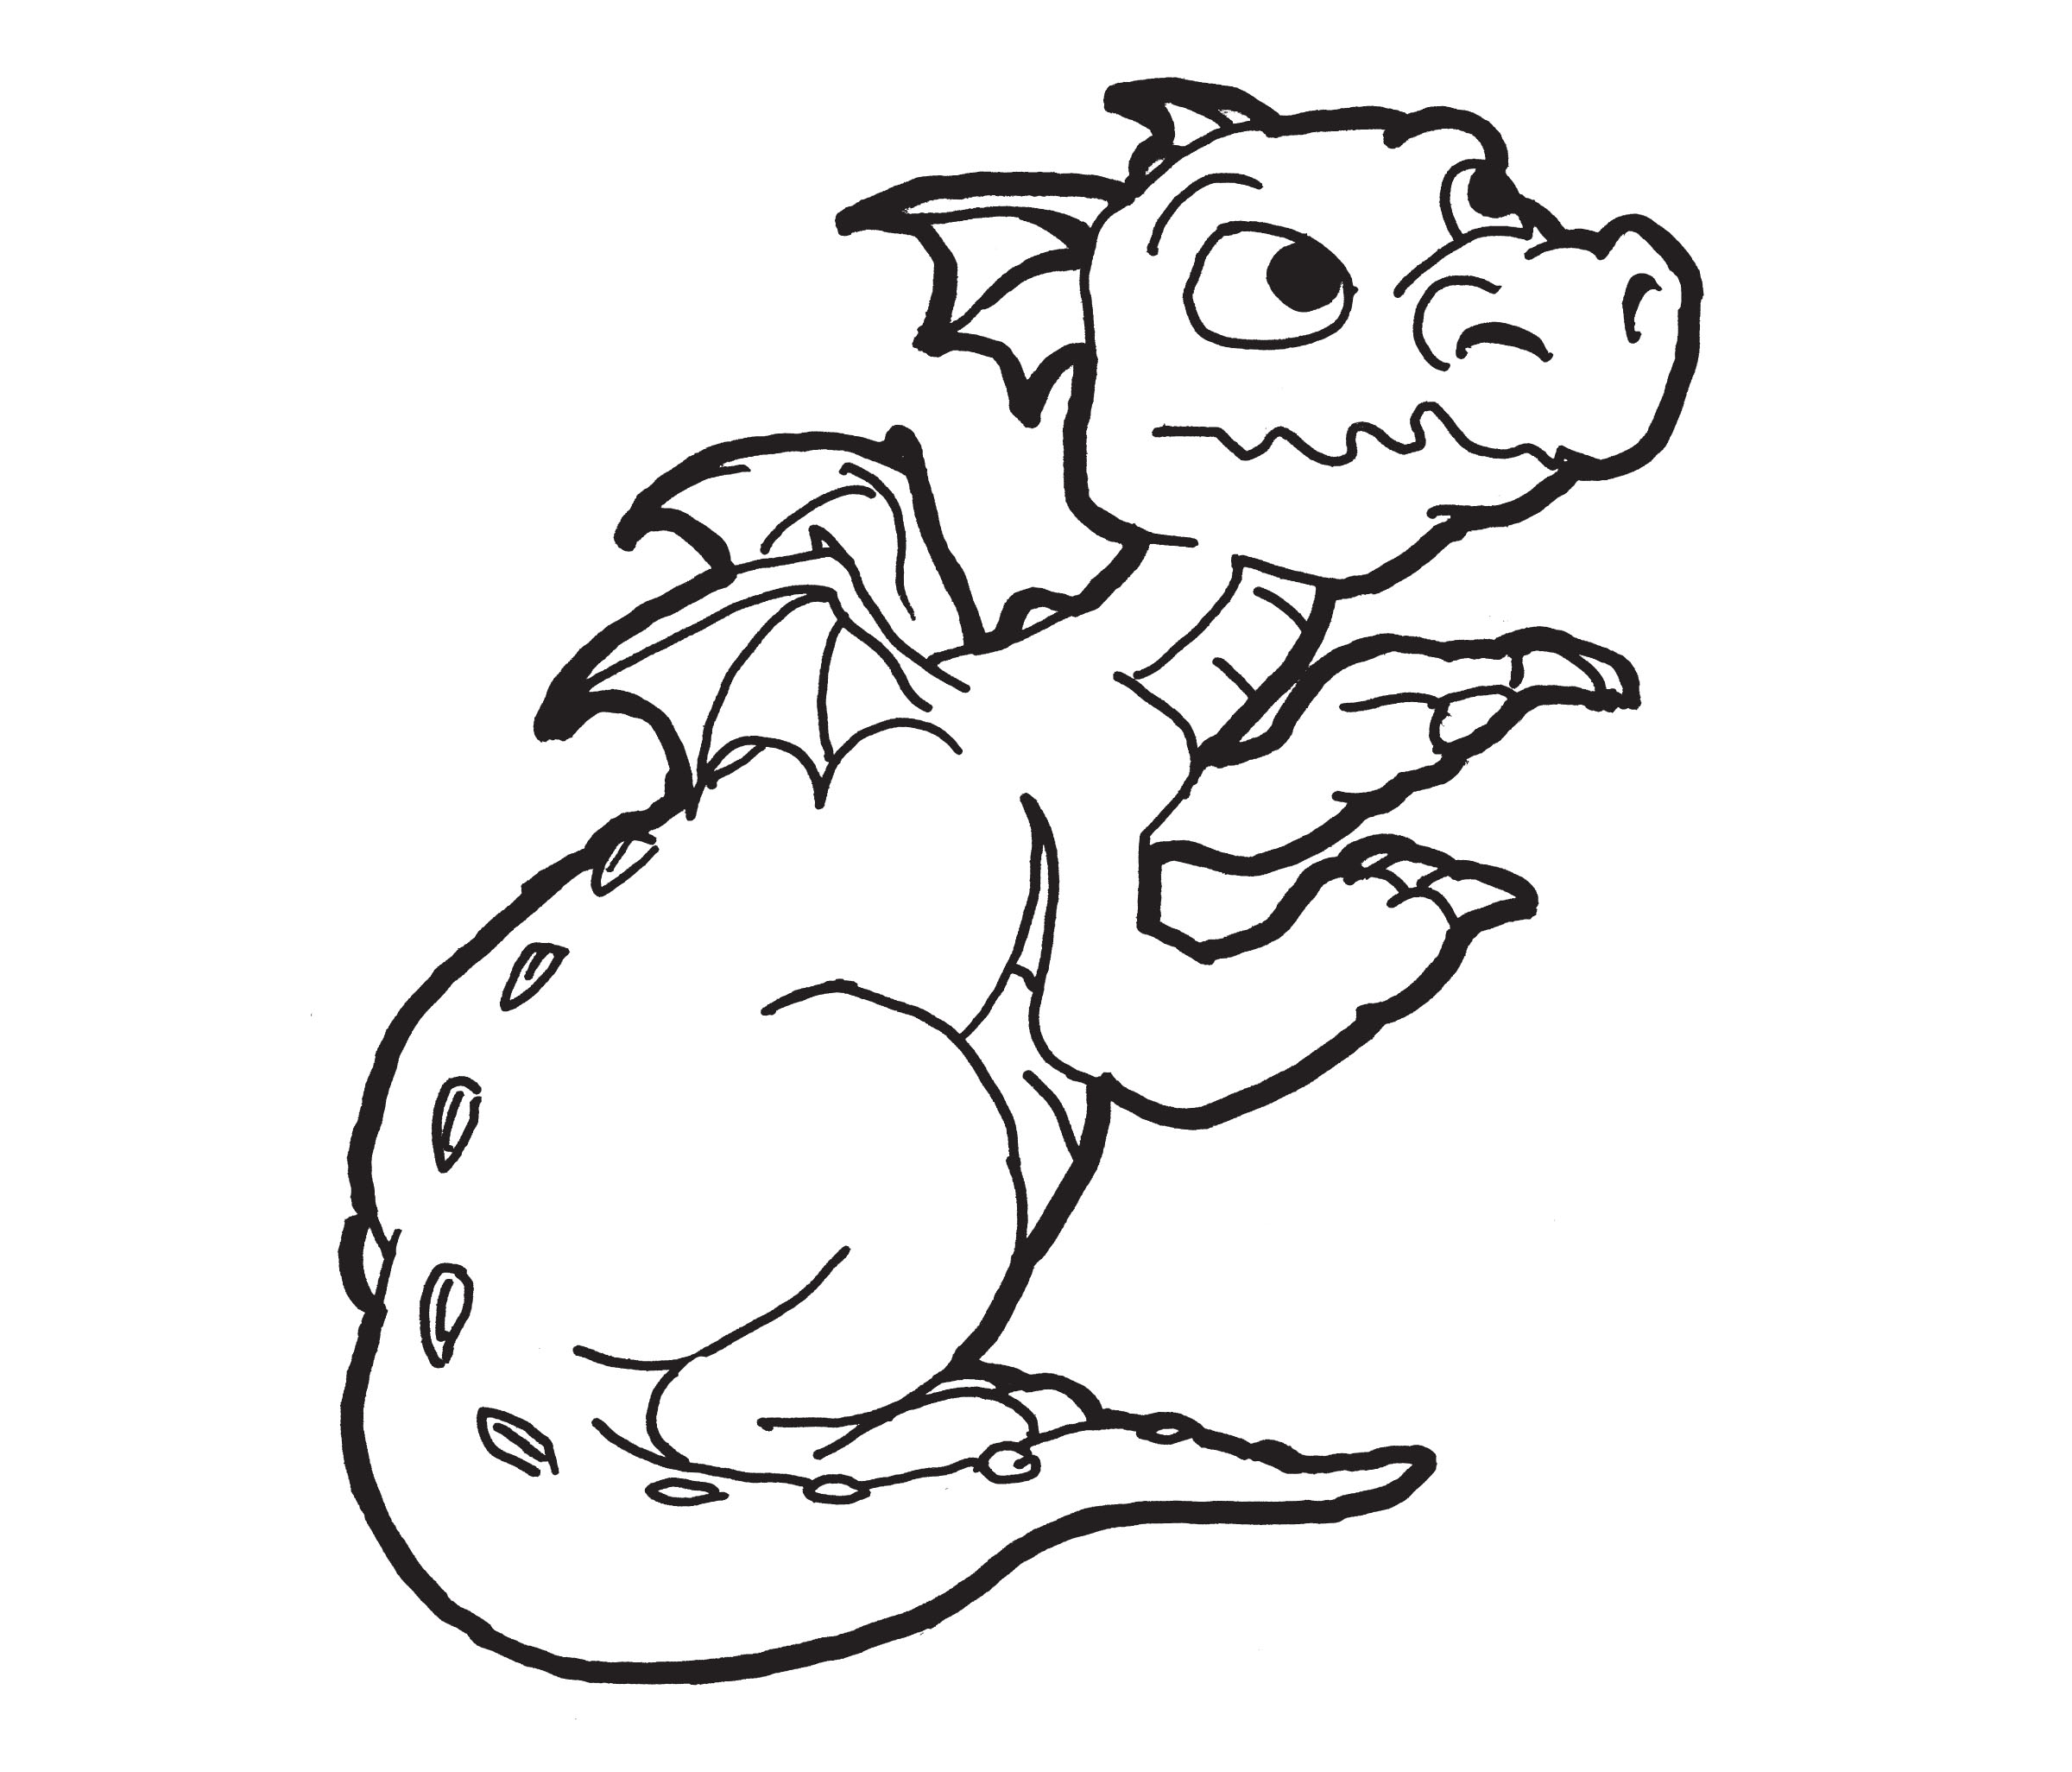 dragon coloring pages free - photo#4